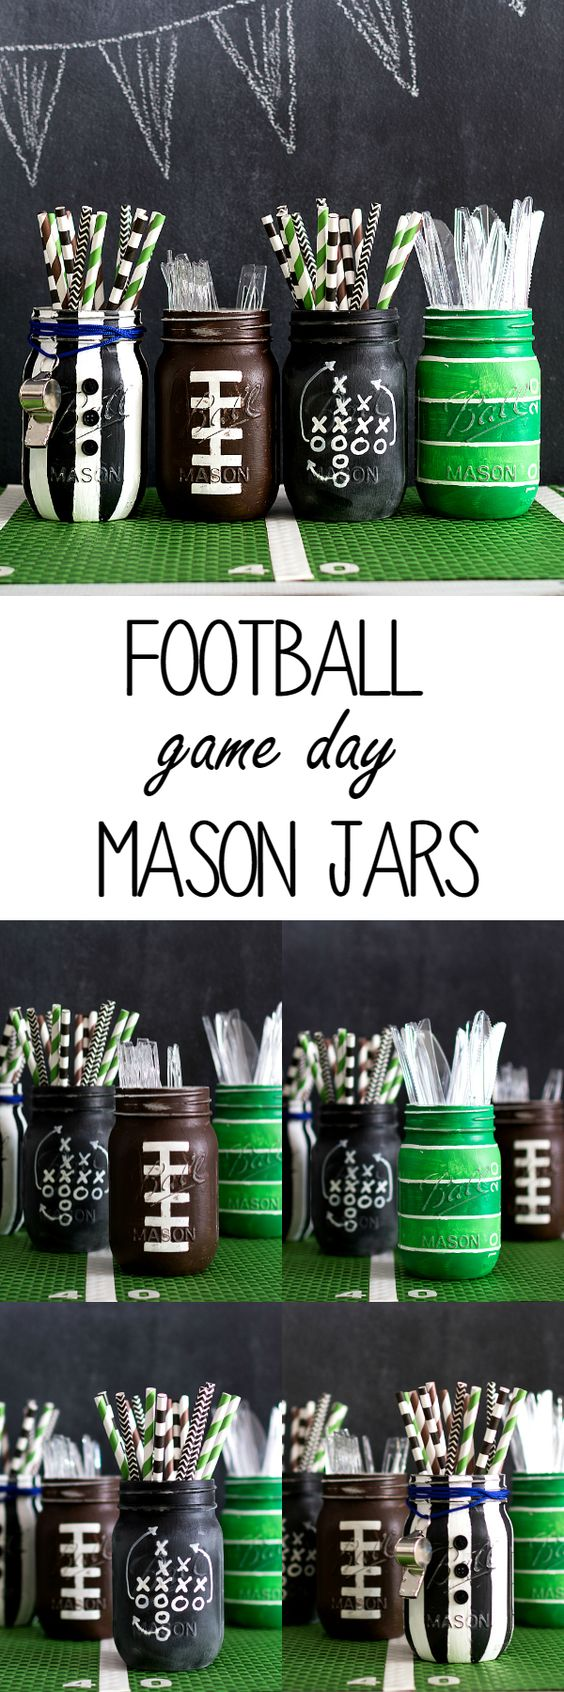 Football Party Mason Jars.